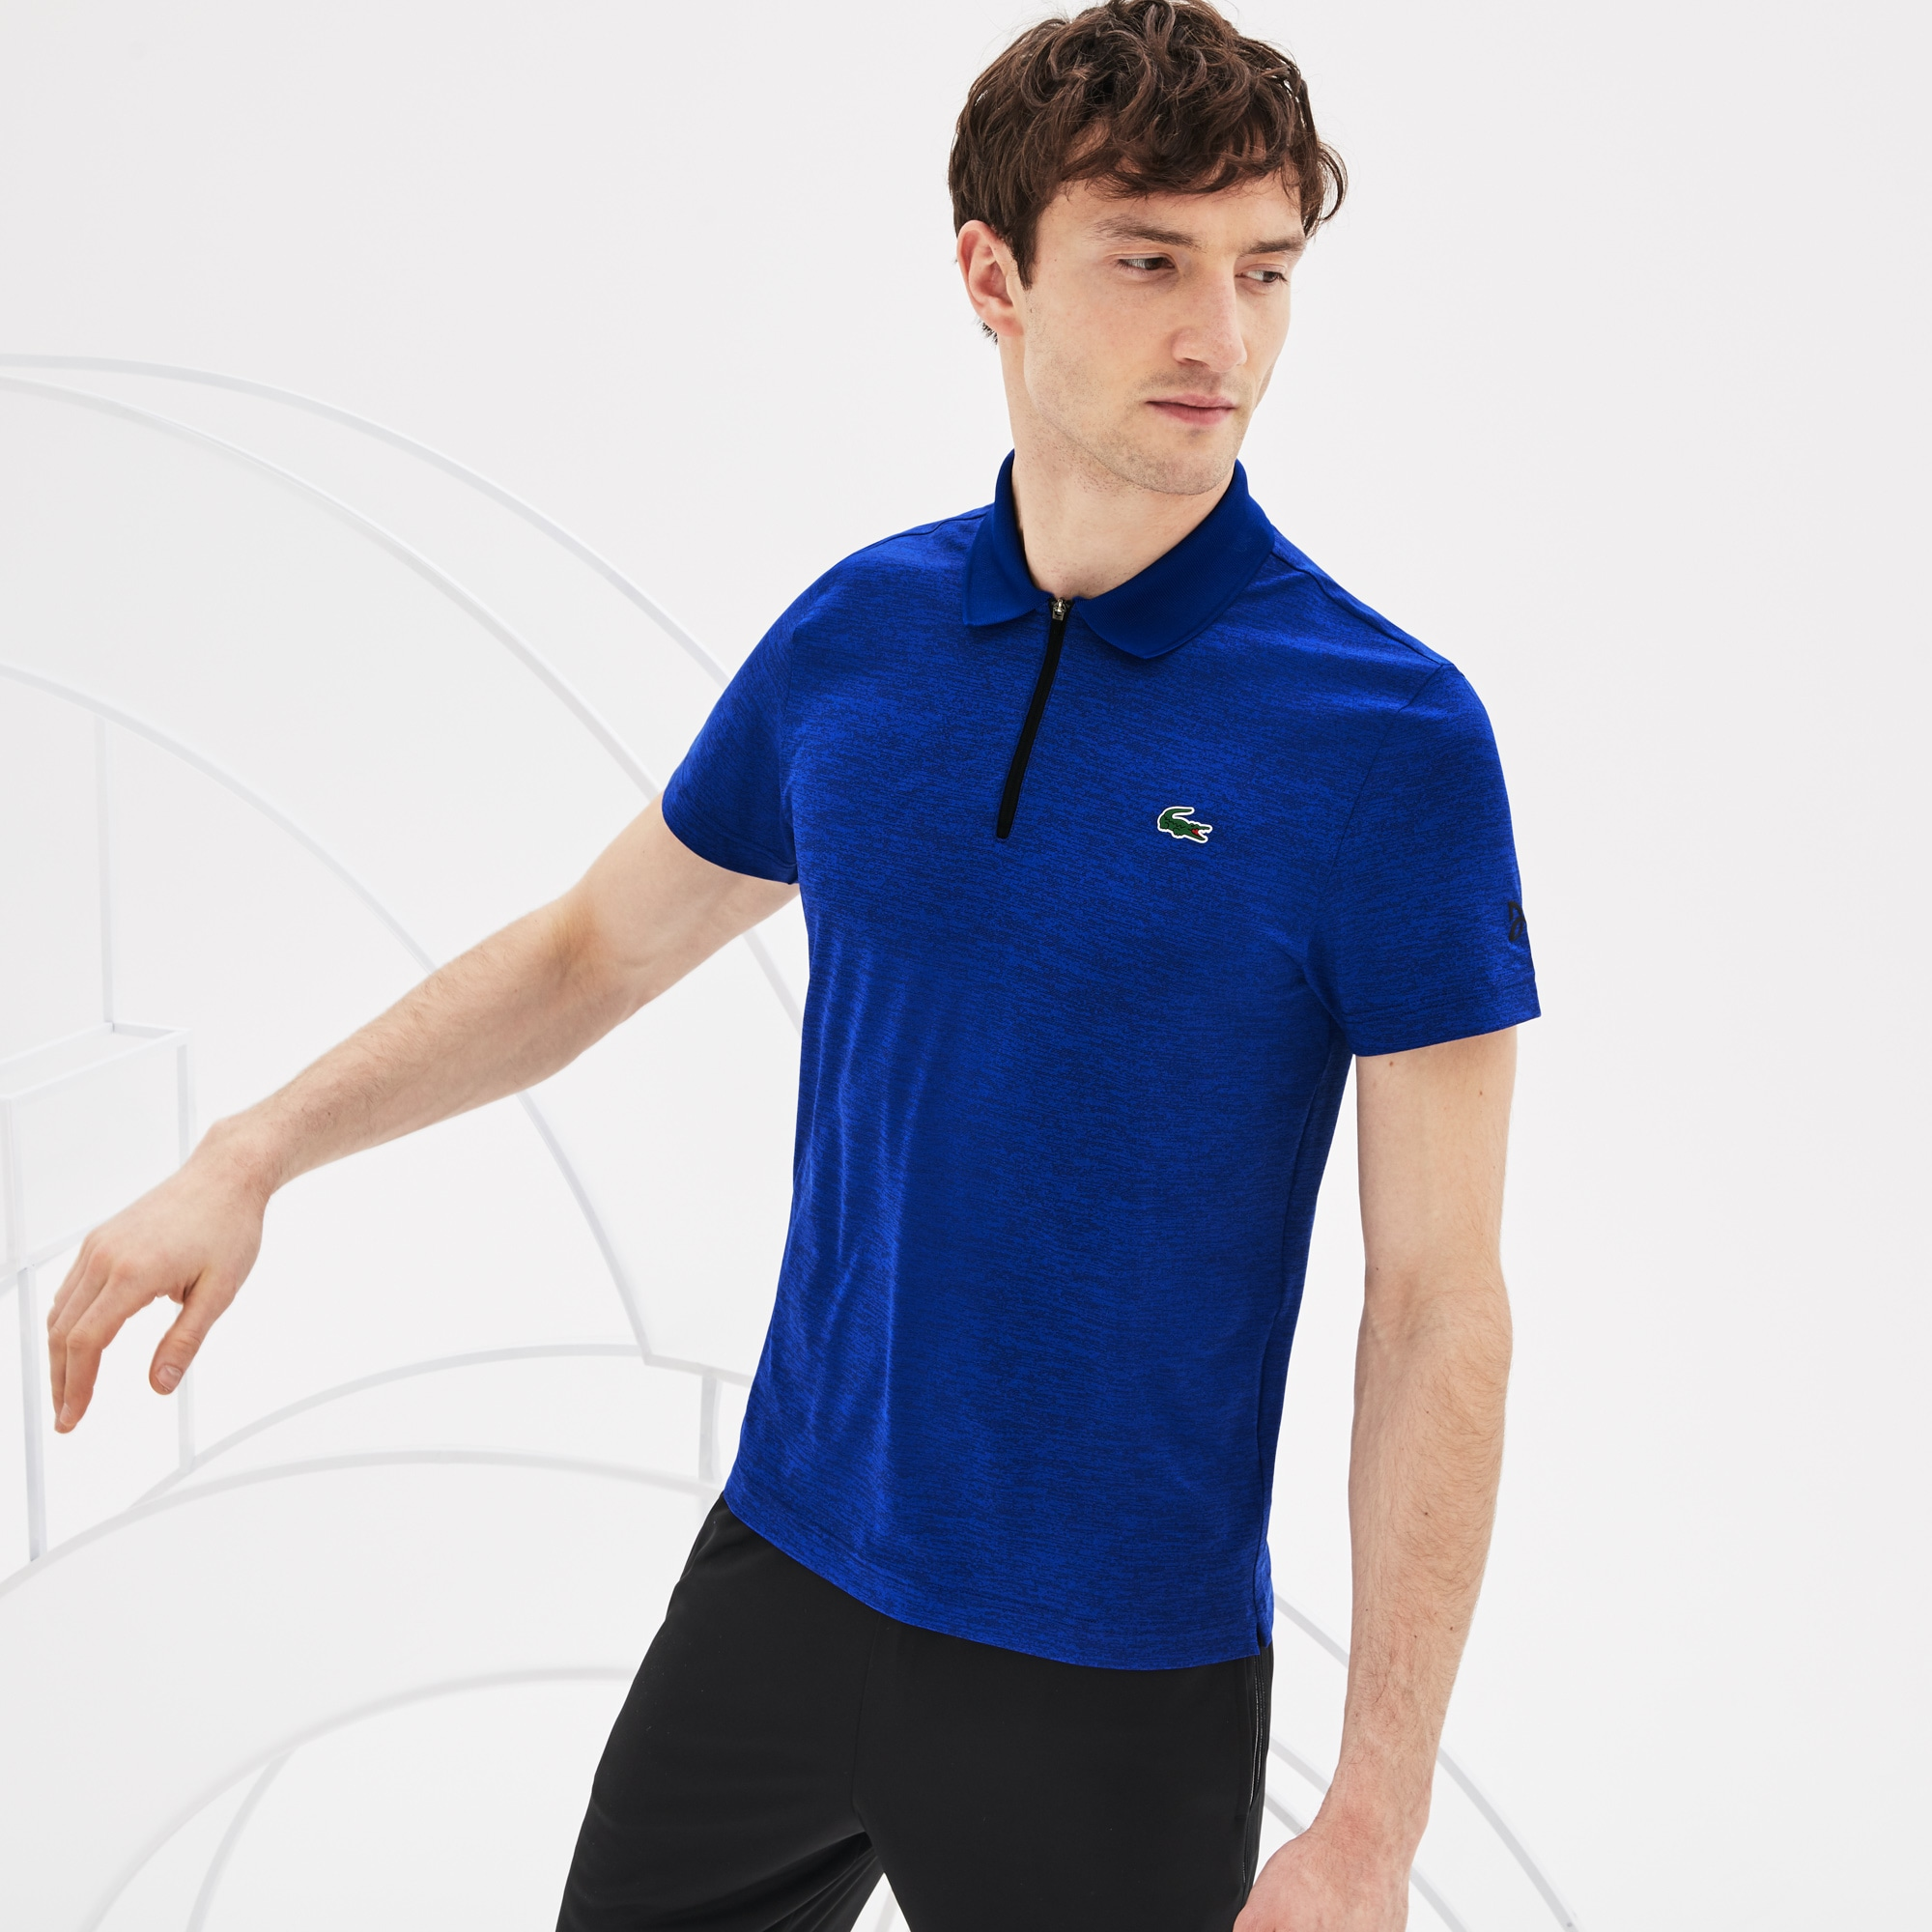 495ddc13e7 Polos Homme | LACOSTE